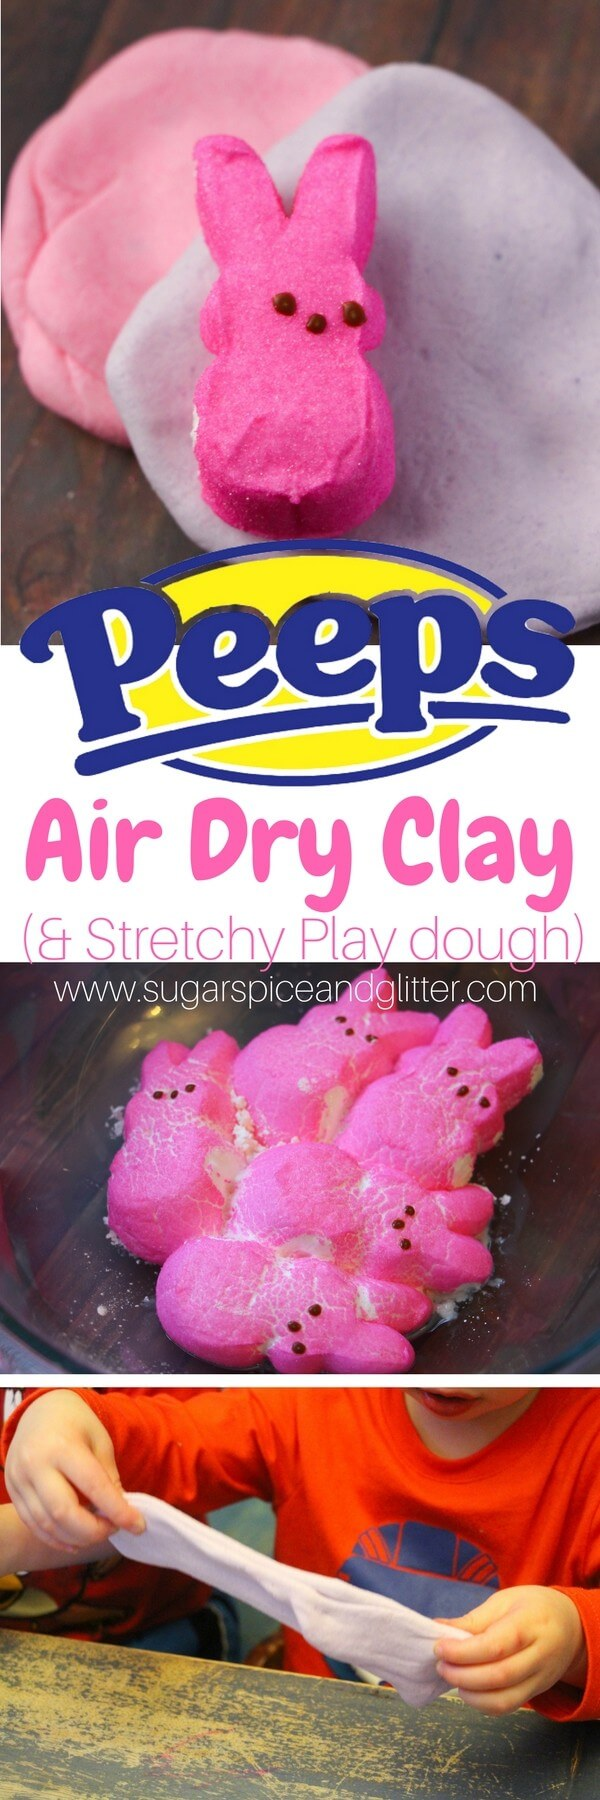 A delicious and easy recipe for Peeps Air Dry Clay - an edible marshmallow play dough that dries to make beautiful porcelain-style ornaments.